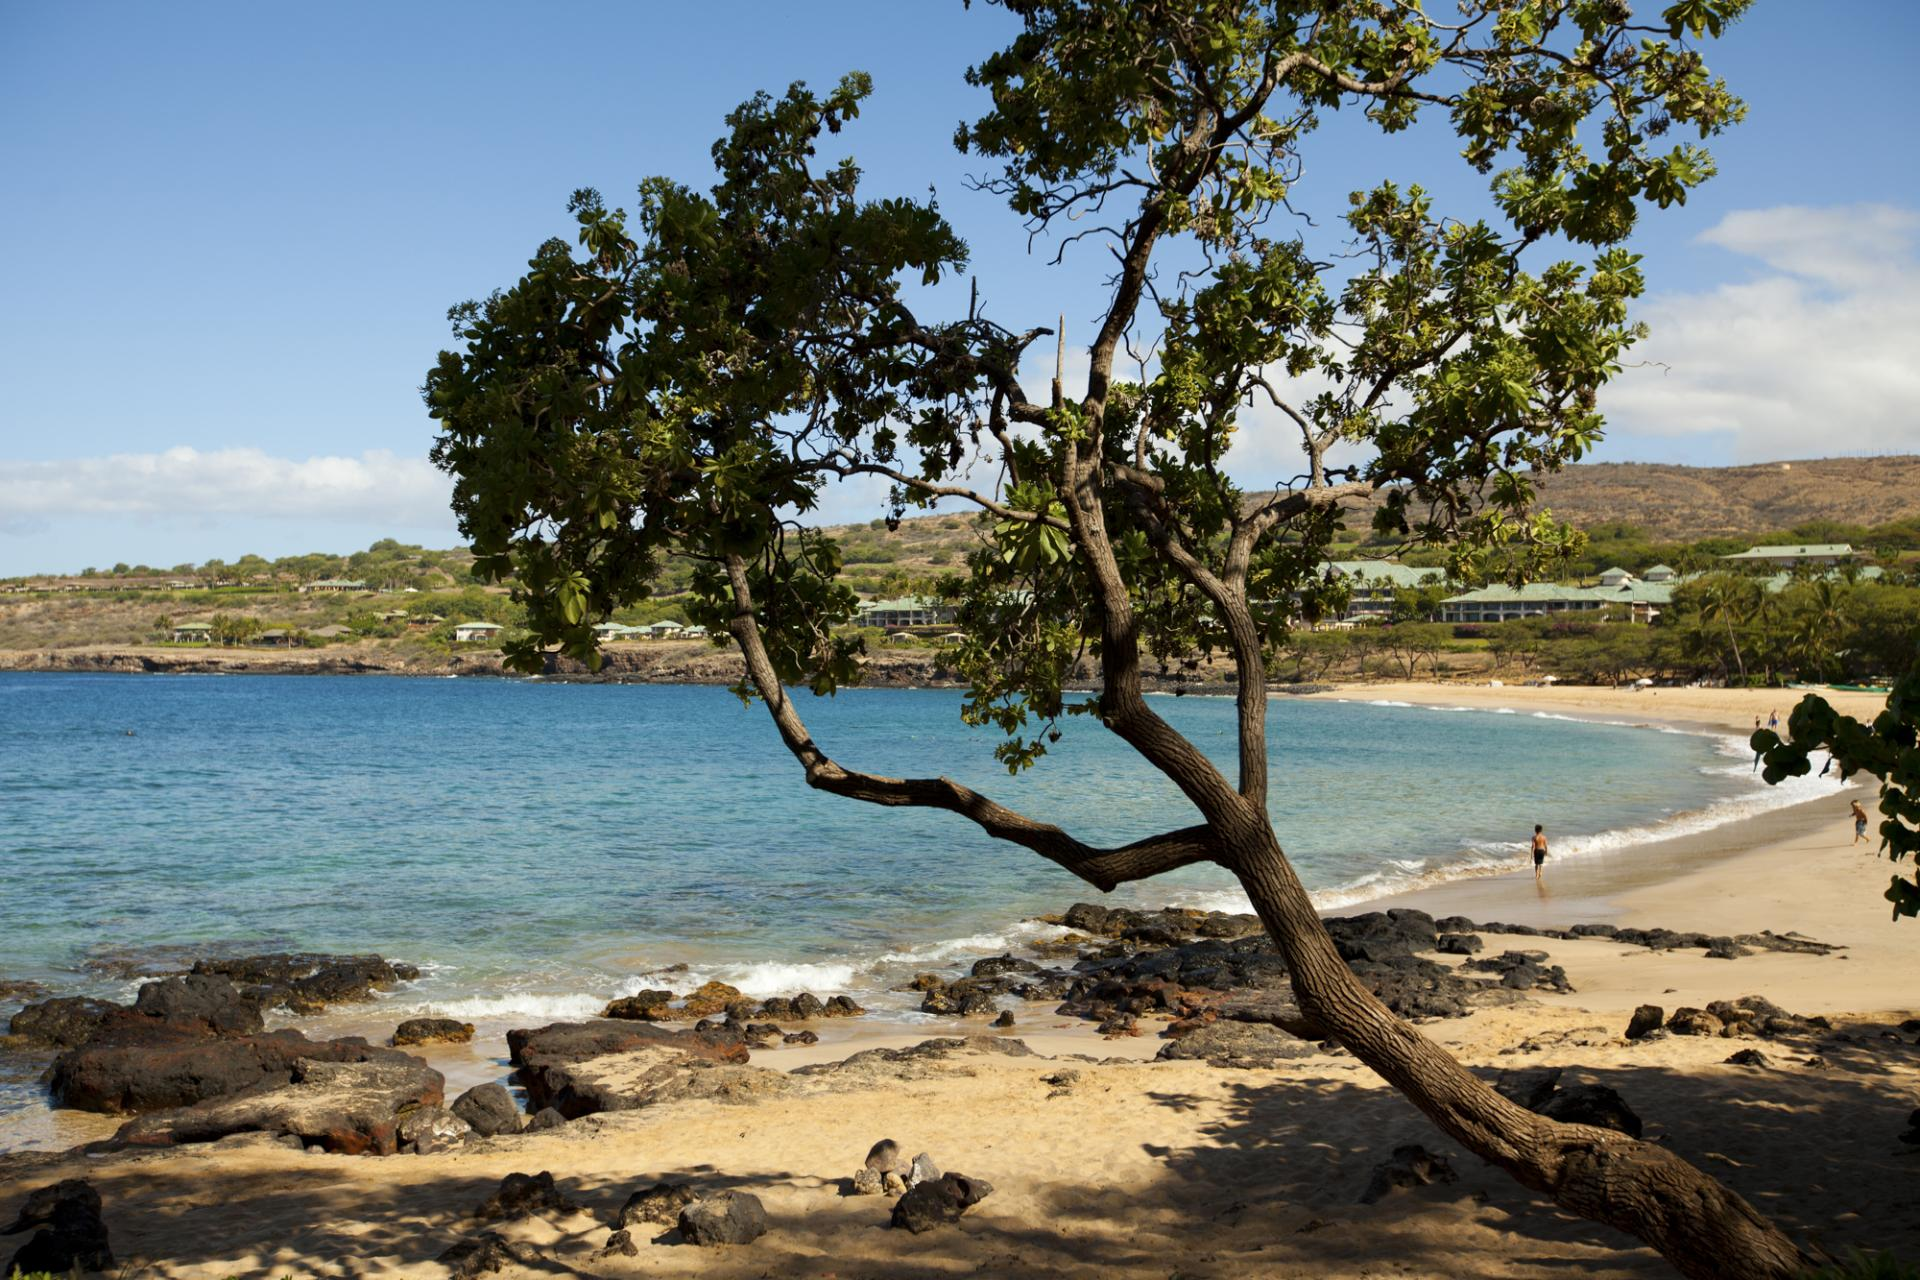 Scenic beach on the Hawaiian island of Lanai